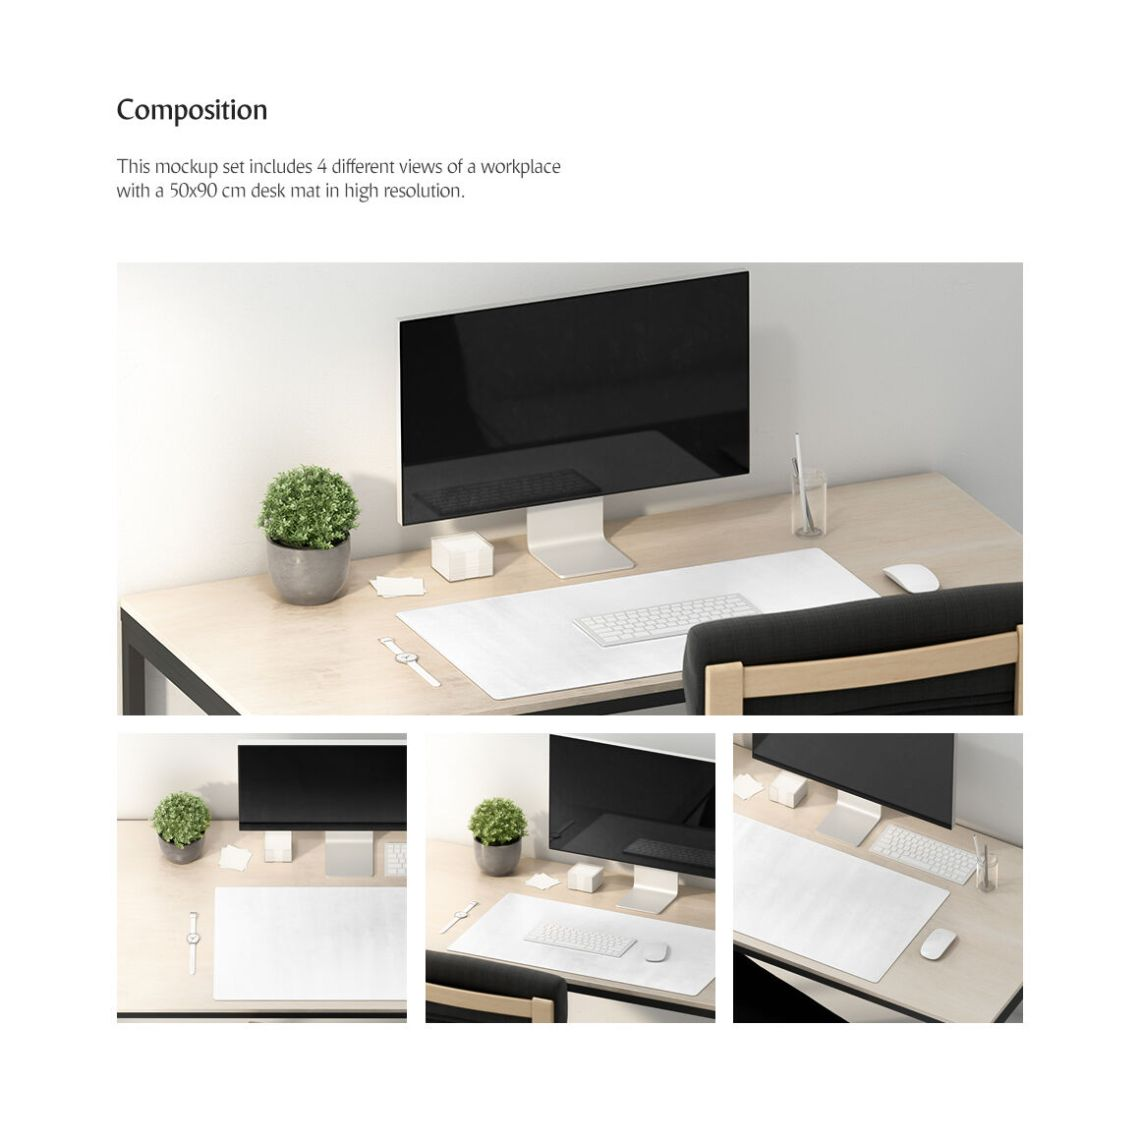 Download Desk Mockup Free Psd Yellowimages